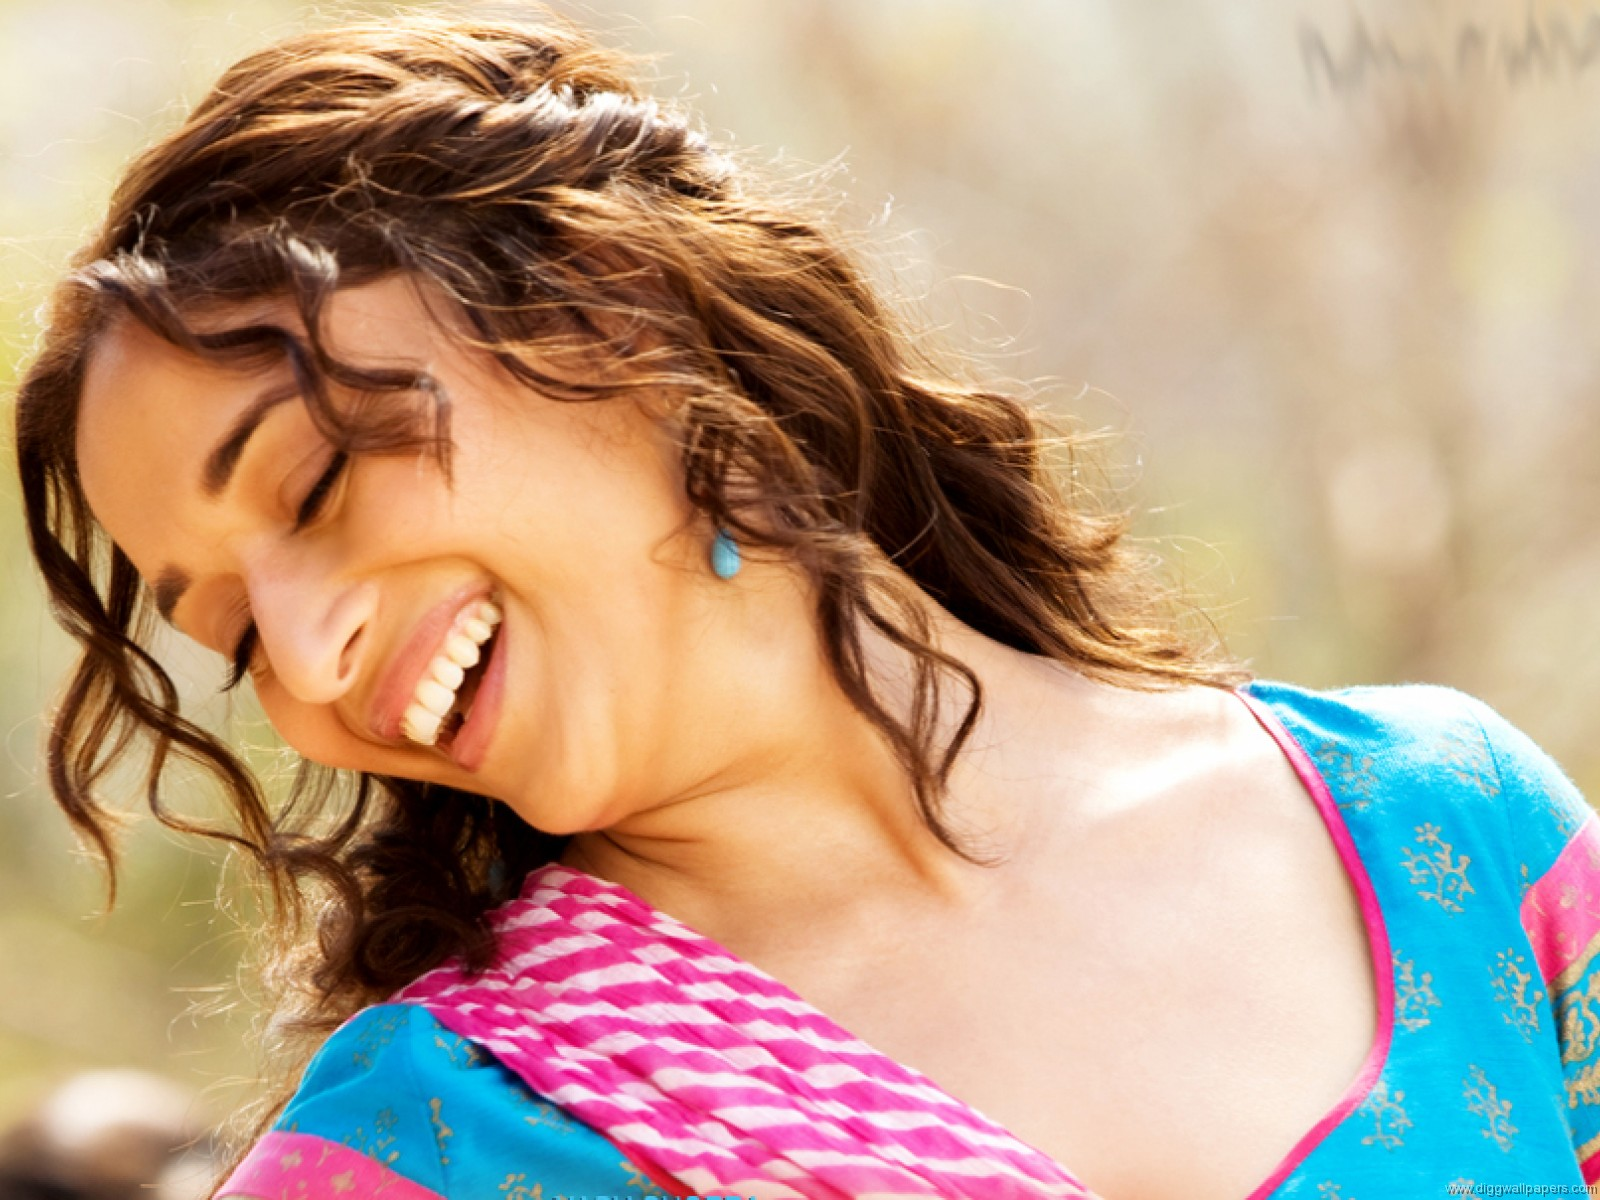 Funny Wallpapers And Videos Madhuri Dixit New Hd Wallpapers-5475